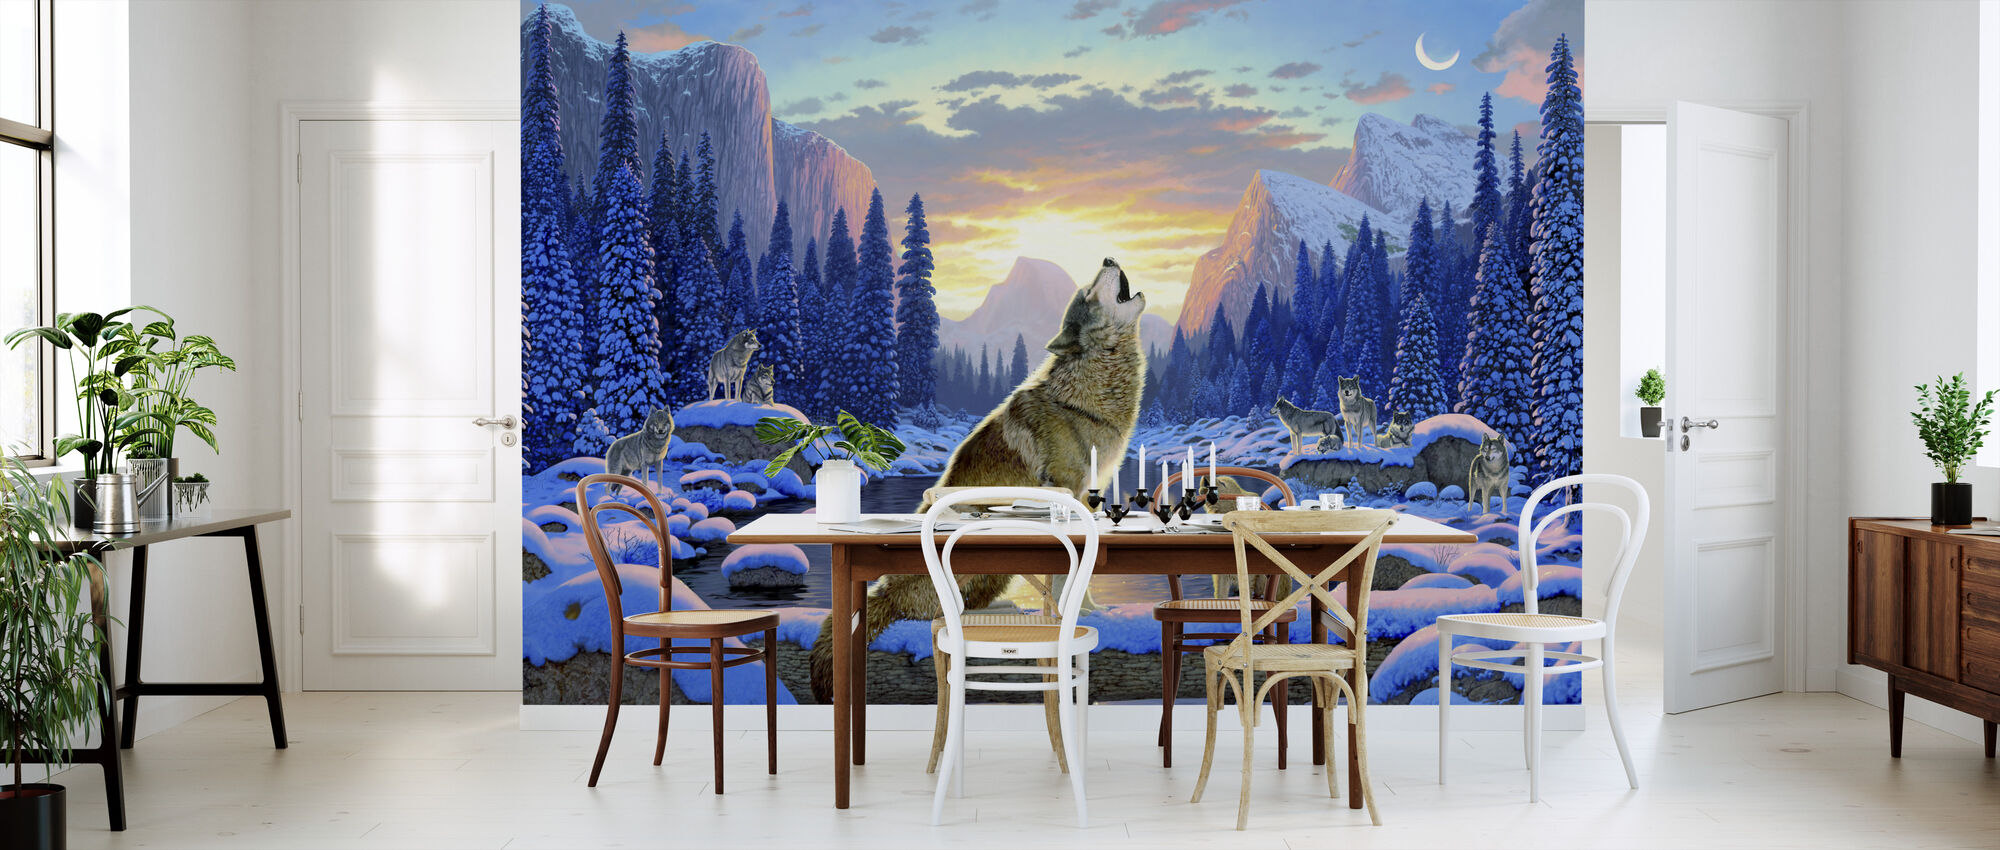 Sitting Wolf and Cub - Wallpaper - Kitchen